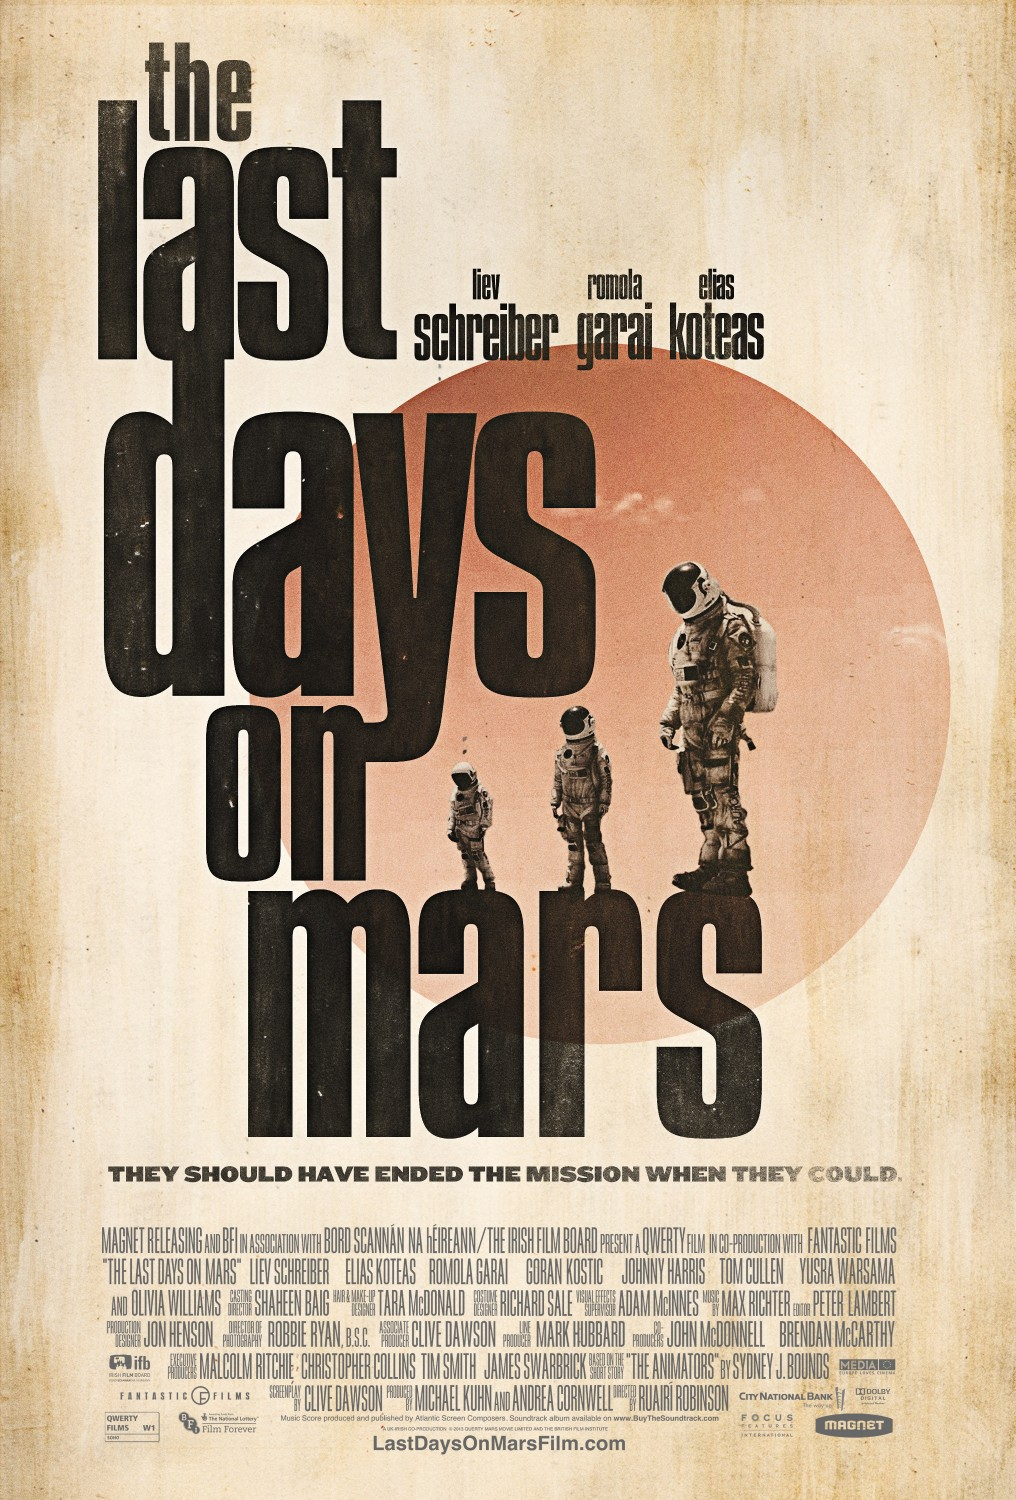 THE LAST DAYS ON MARS-Official Poster Banner PROMO POSTER-04NOVEMBRO2013-01